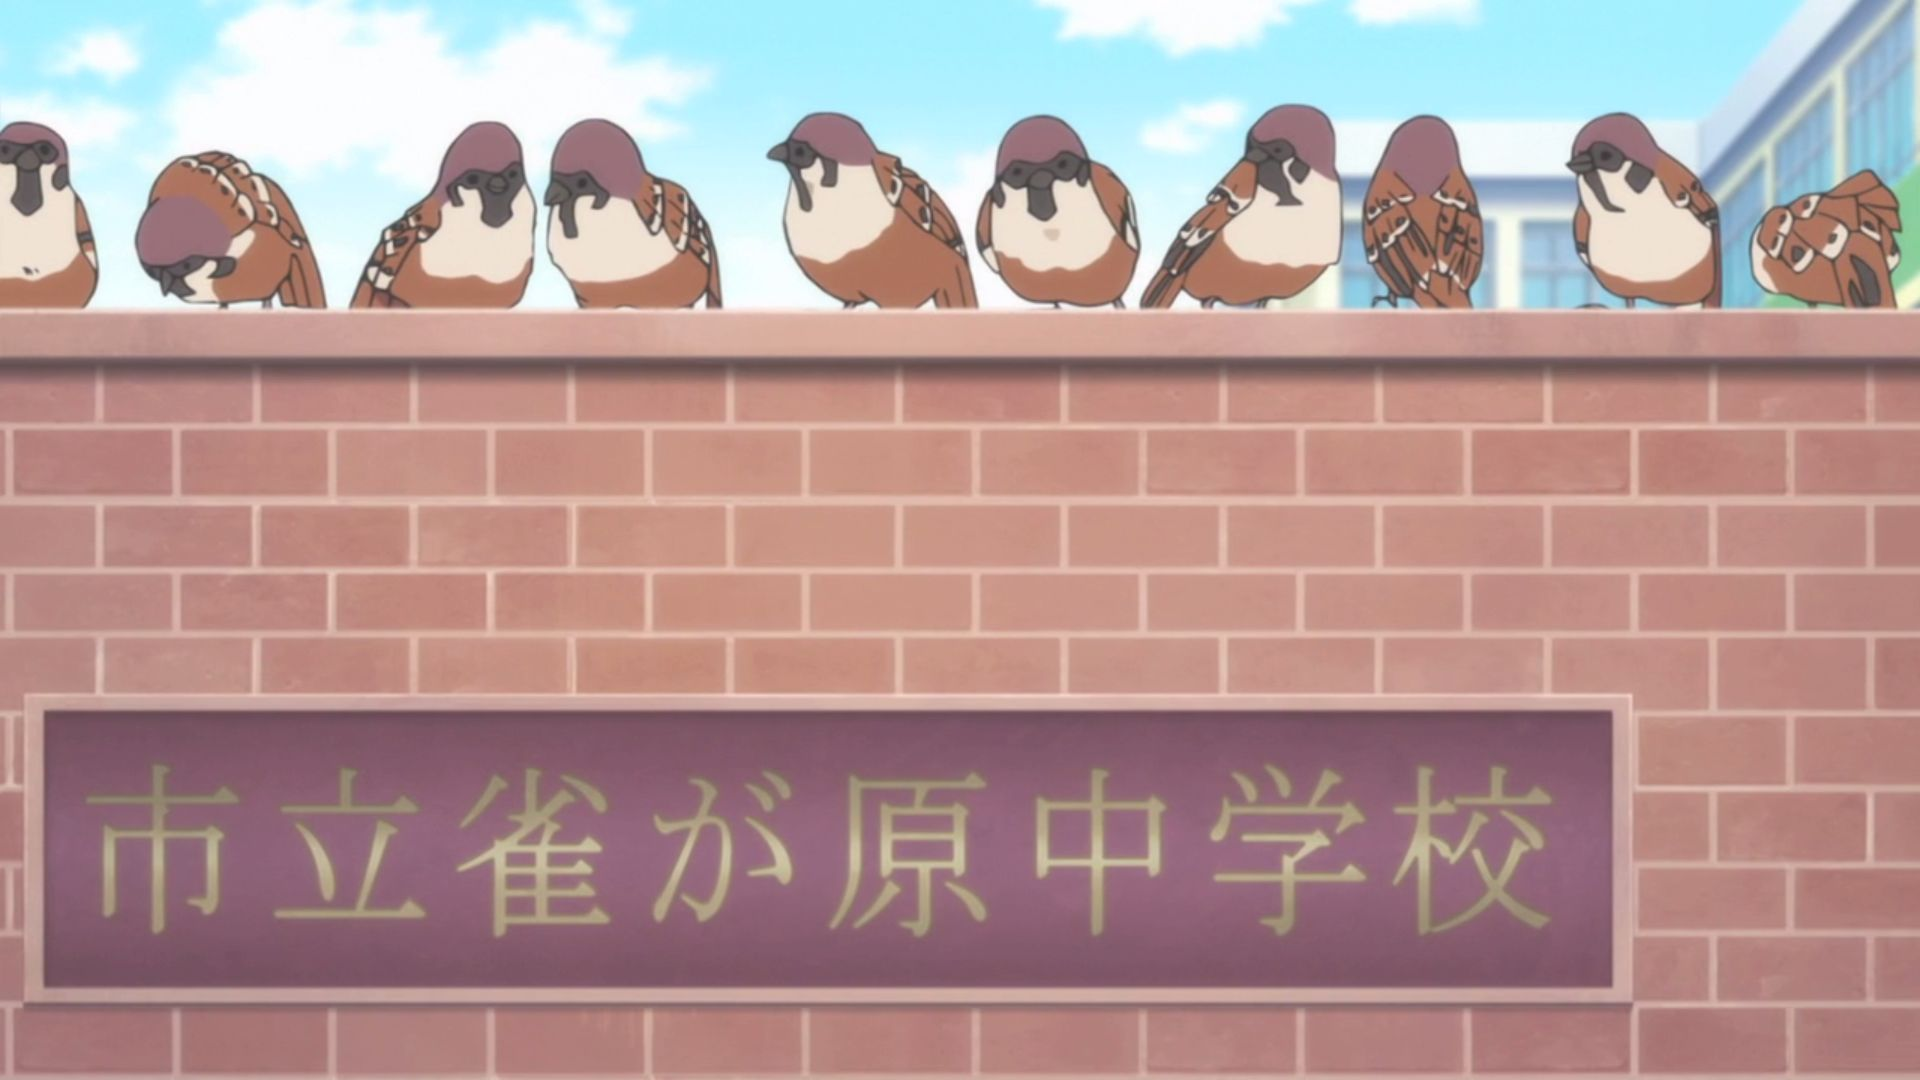 【image】I heard they eat sparrows in Kyoto